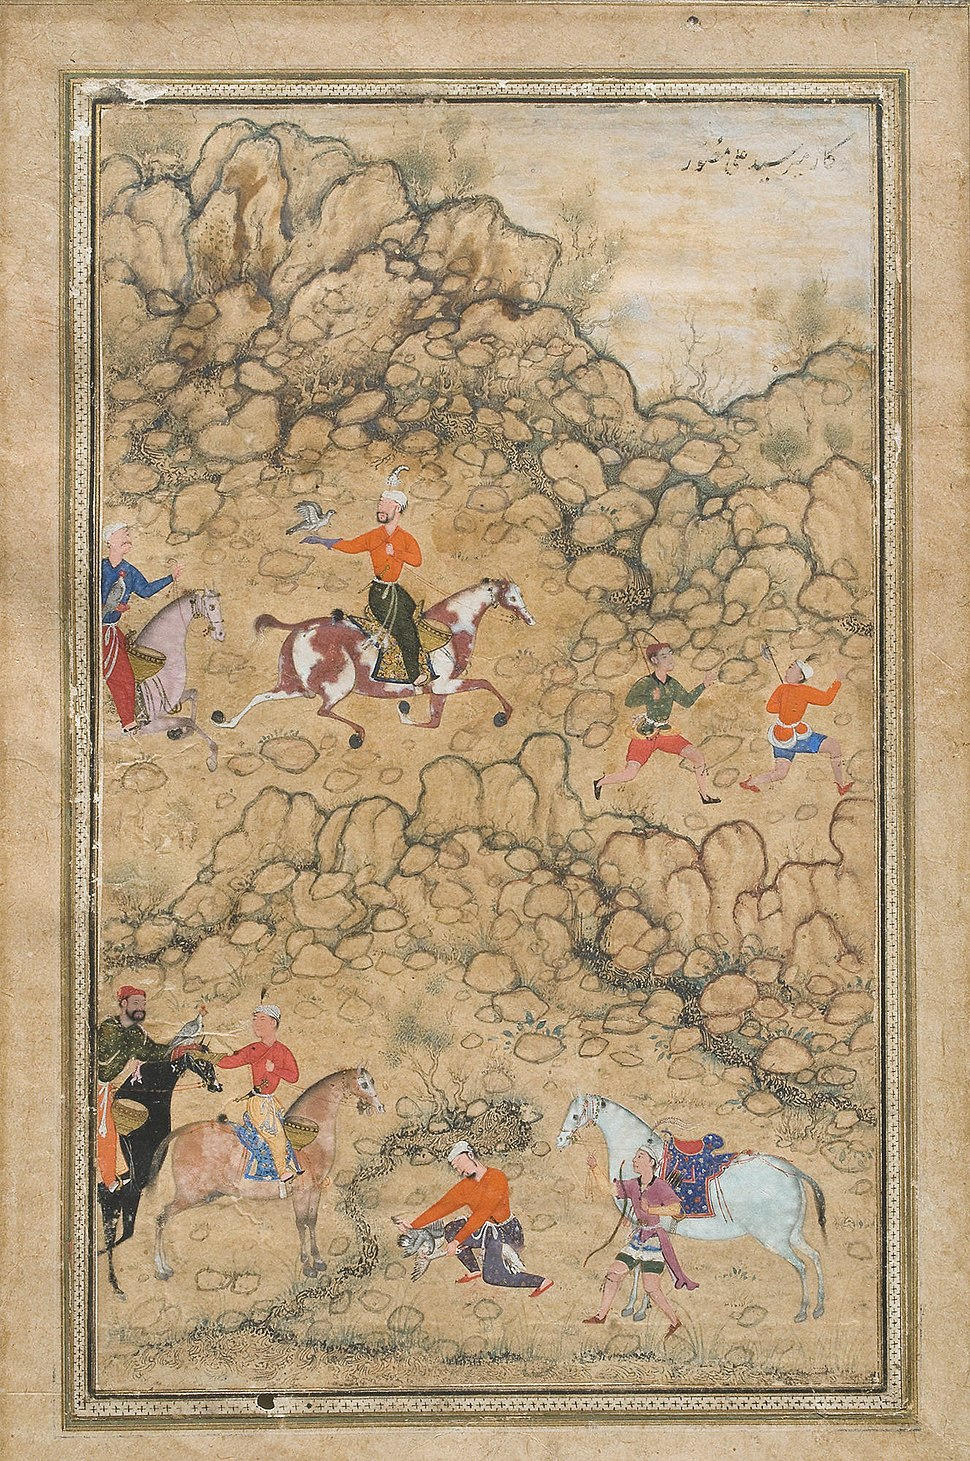 Prince Akbar and Noblemen Hawking, Probably Accompanied by His Guardian Bairam Khan